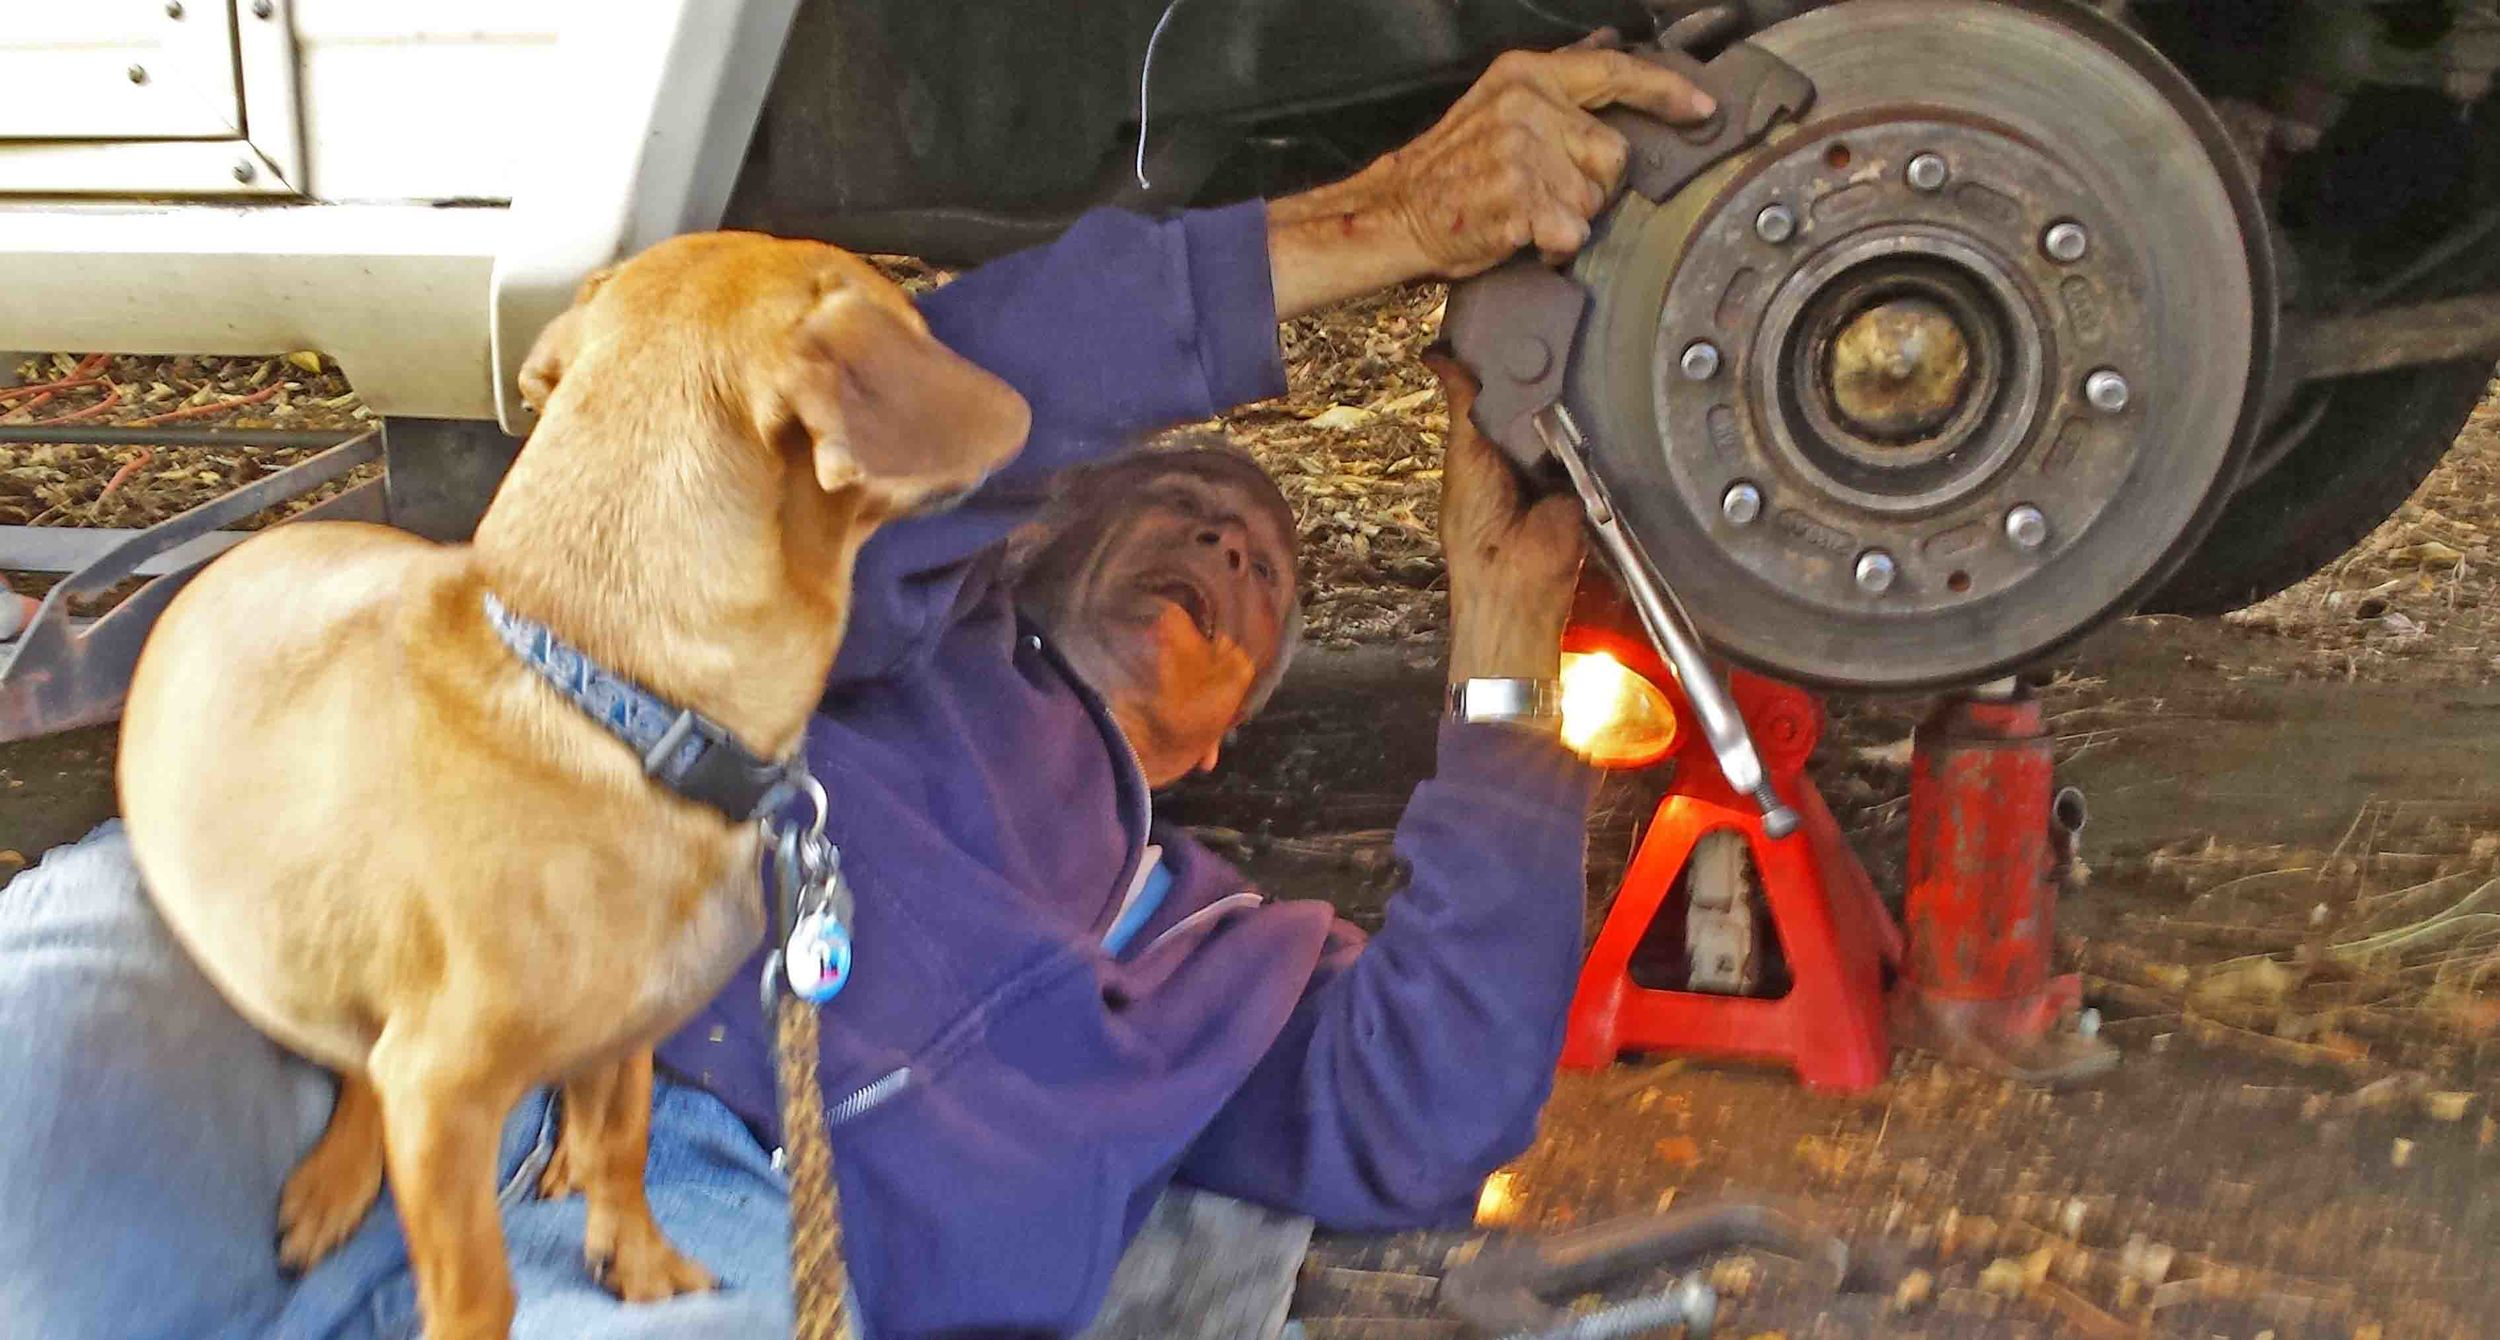 grand dog, dad passing on good mechanic tips to Doodle_edited-1.jpg